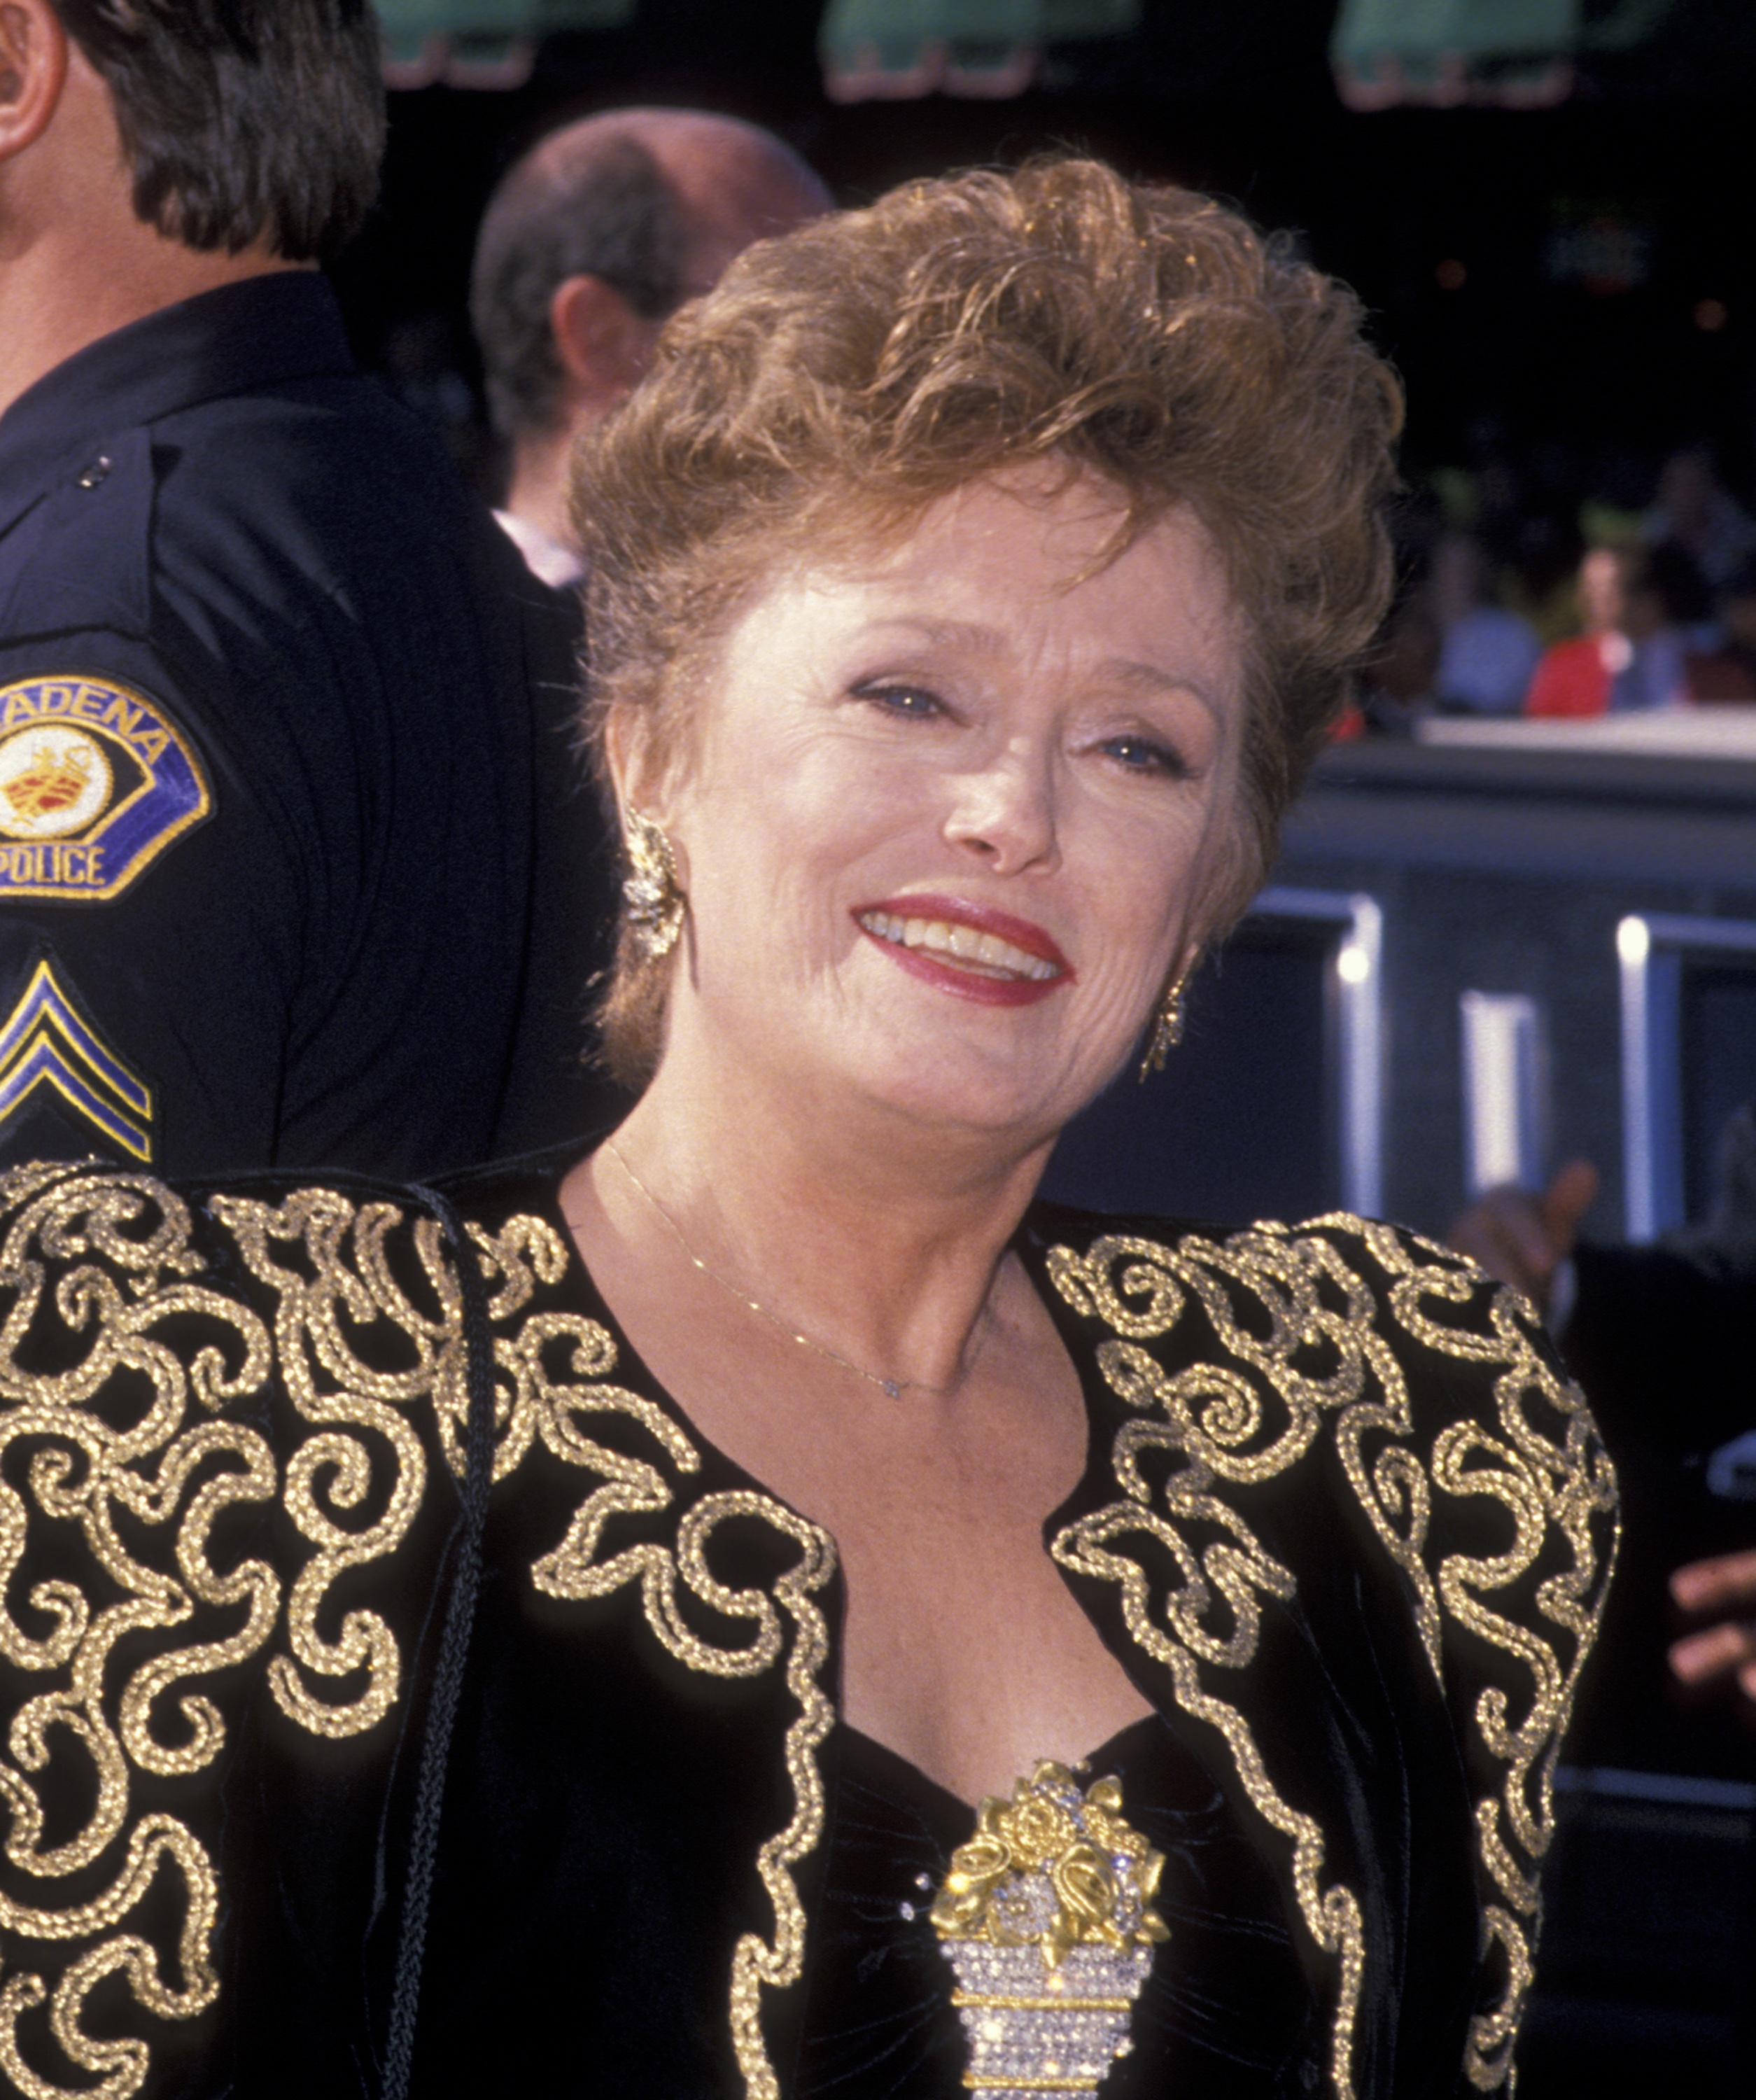 Actress Rue McClanahan attends 41st Annual Primetime Emmy Awards on Sept. 17, 1989, at the Pasadena Civic Auditorium in Pasadena, Calif.